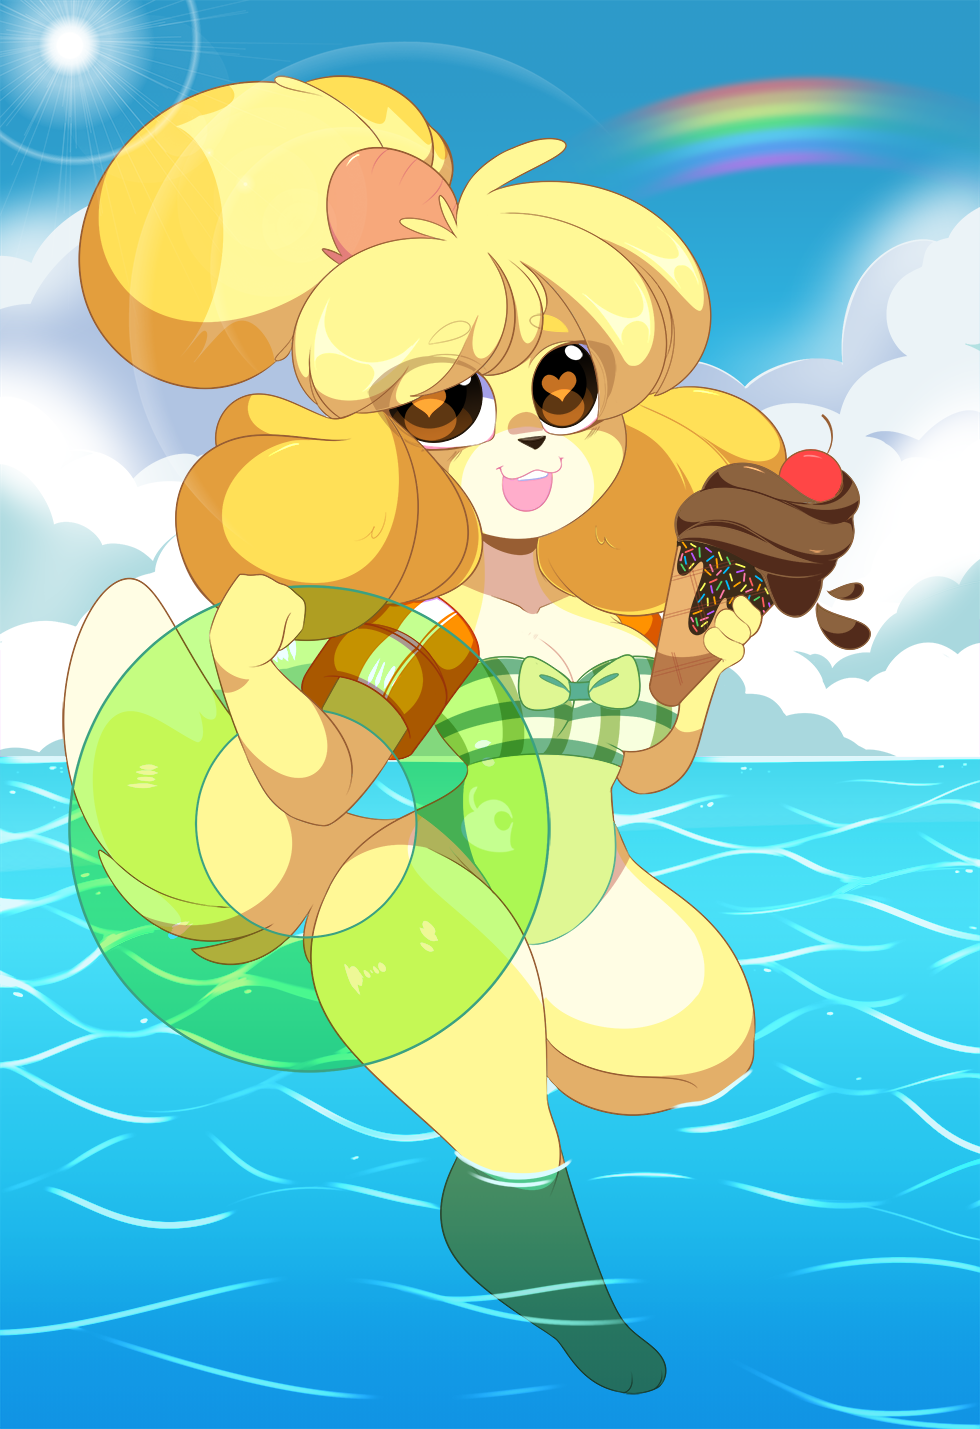 Most recent image: Summer Isabelle